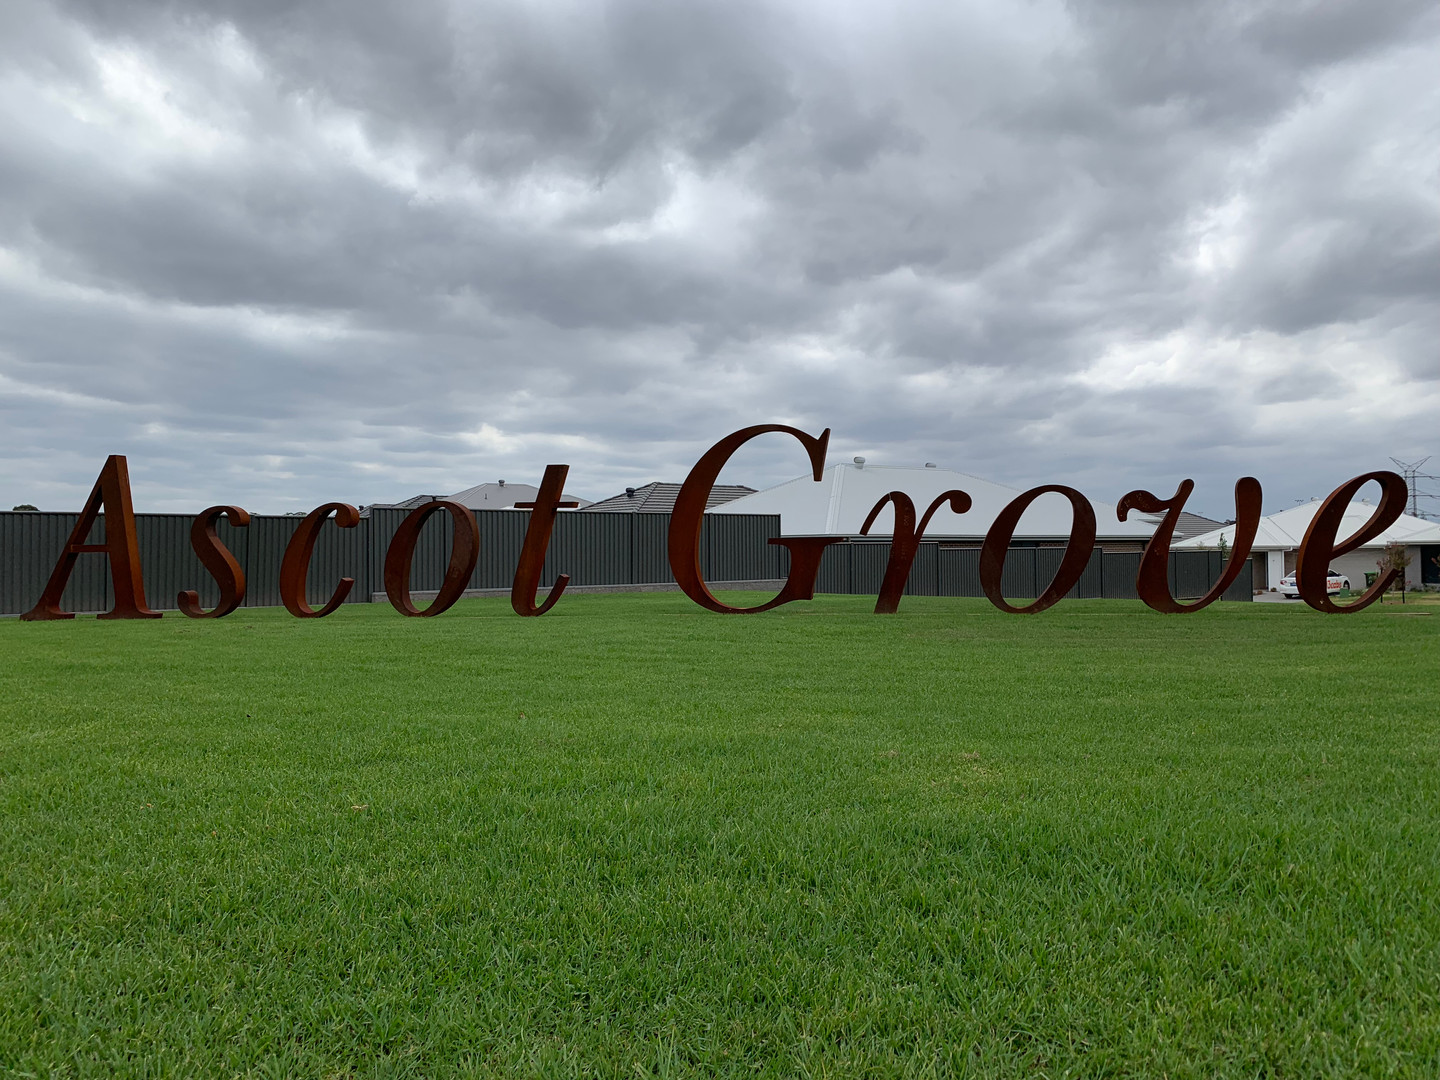 """Ascot Grove"" Sign - Catherine Park"